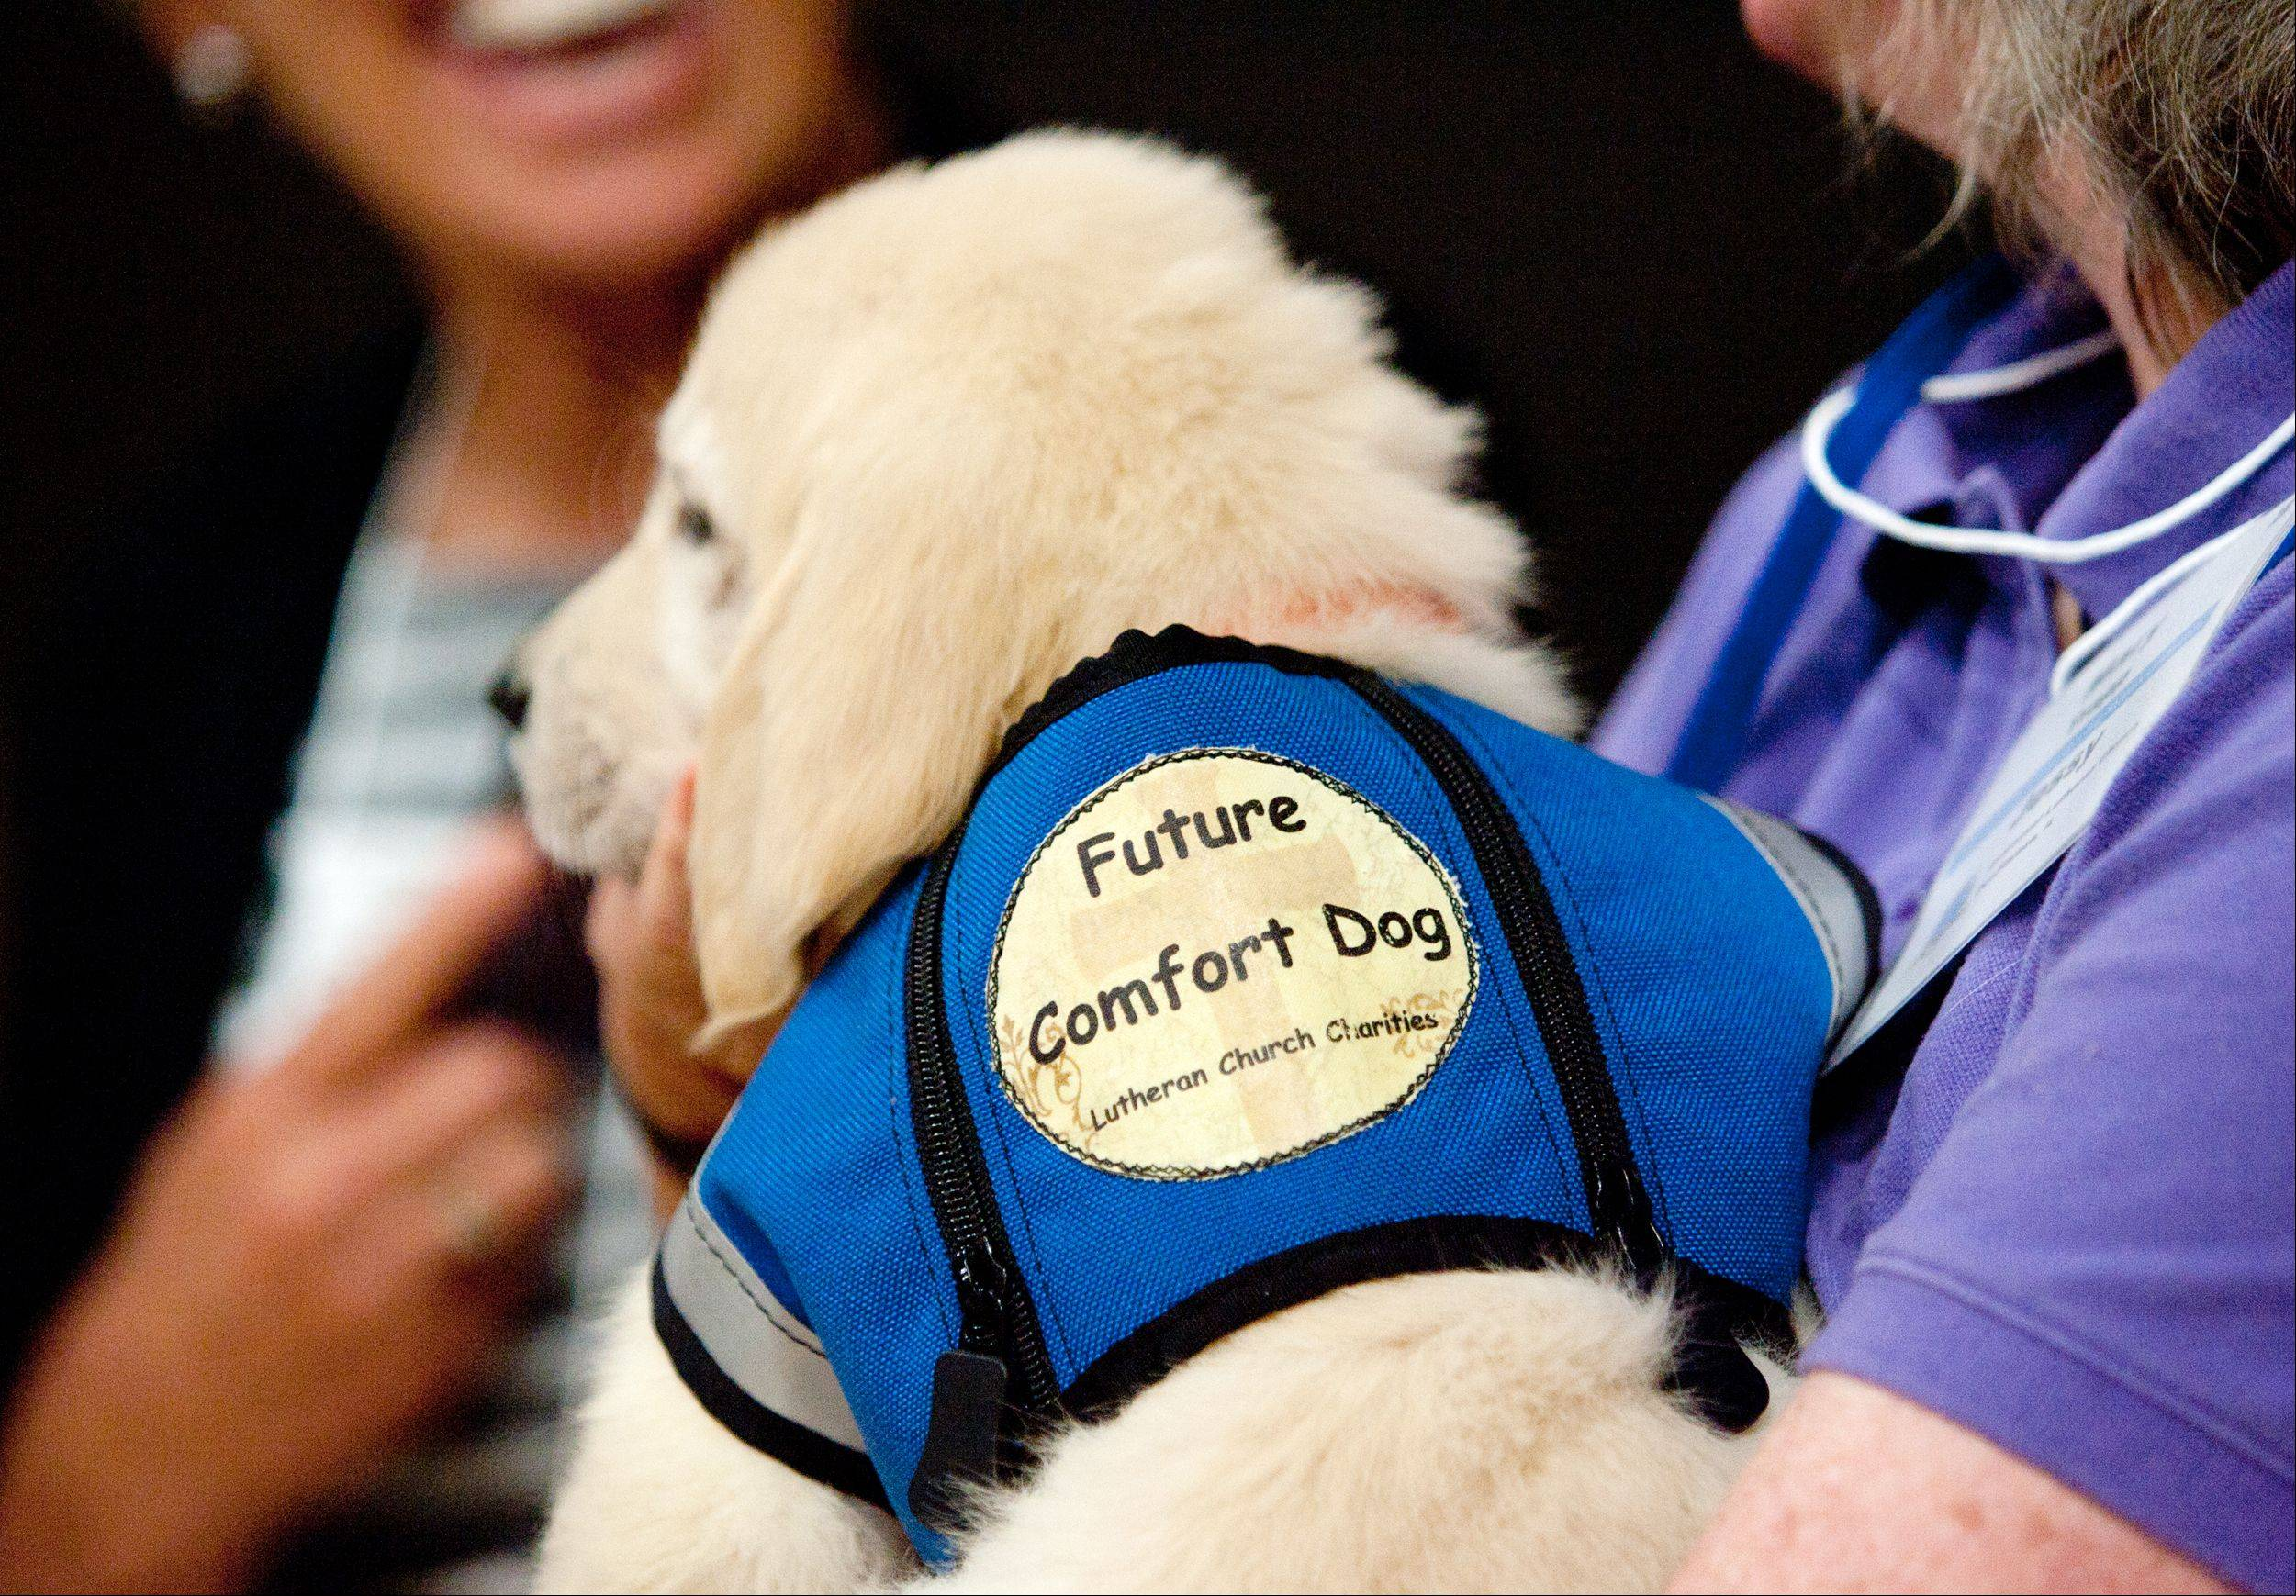 Mary Trapp of Villa Park holds 10-week-old comfort dog Shiloh during the annual meeting for the K-9 Comfort Dog Ministry held this year at the Trinity Lutheran Church in Roselle.